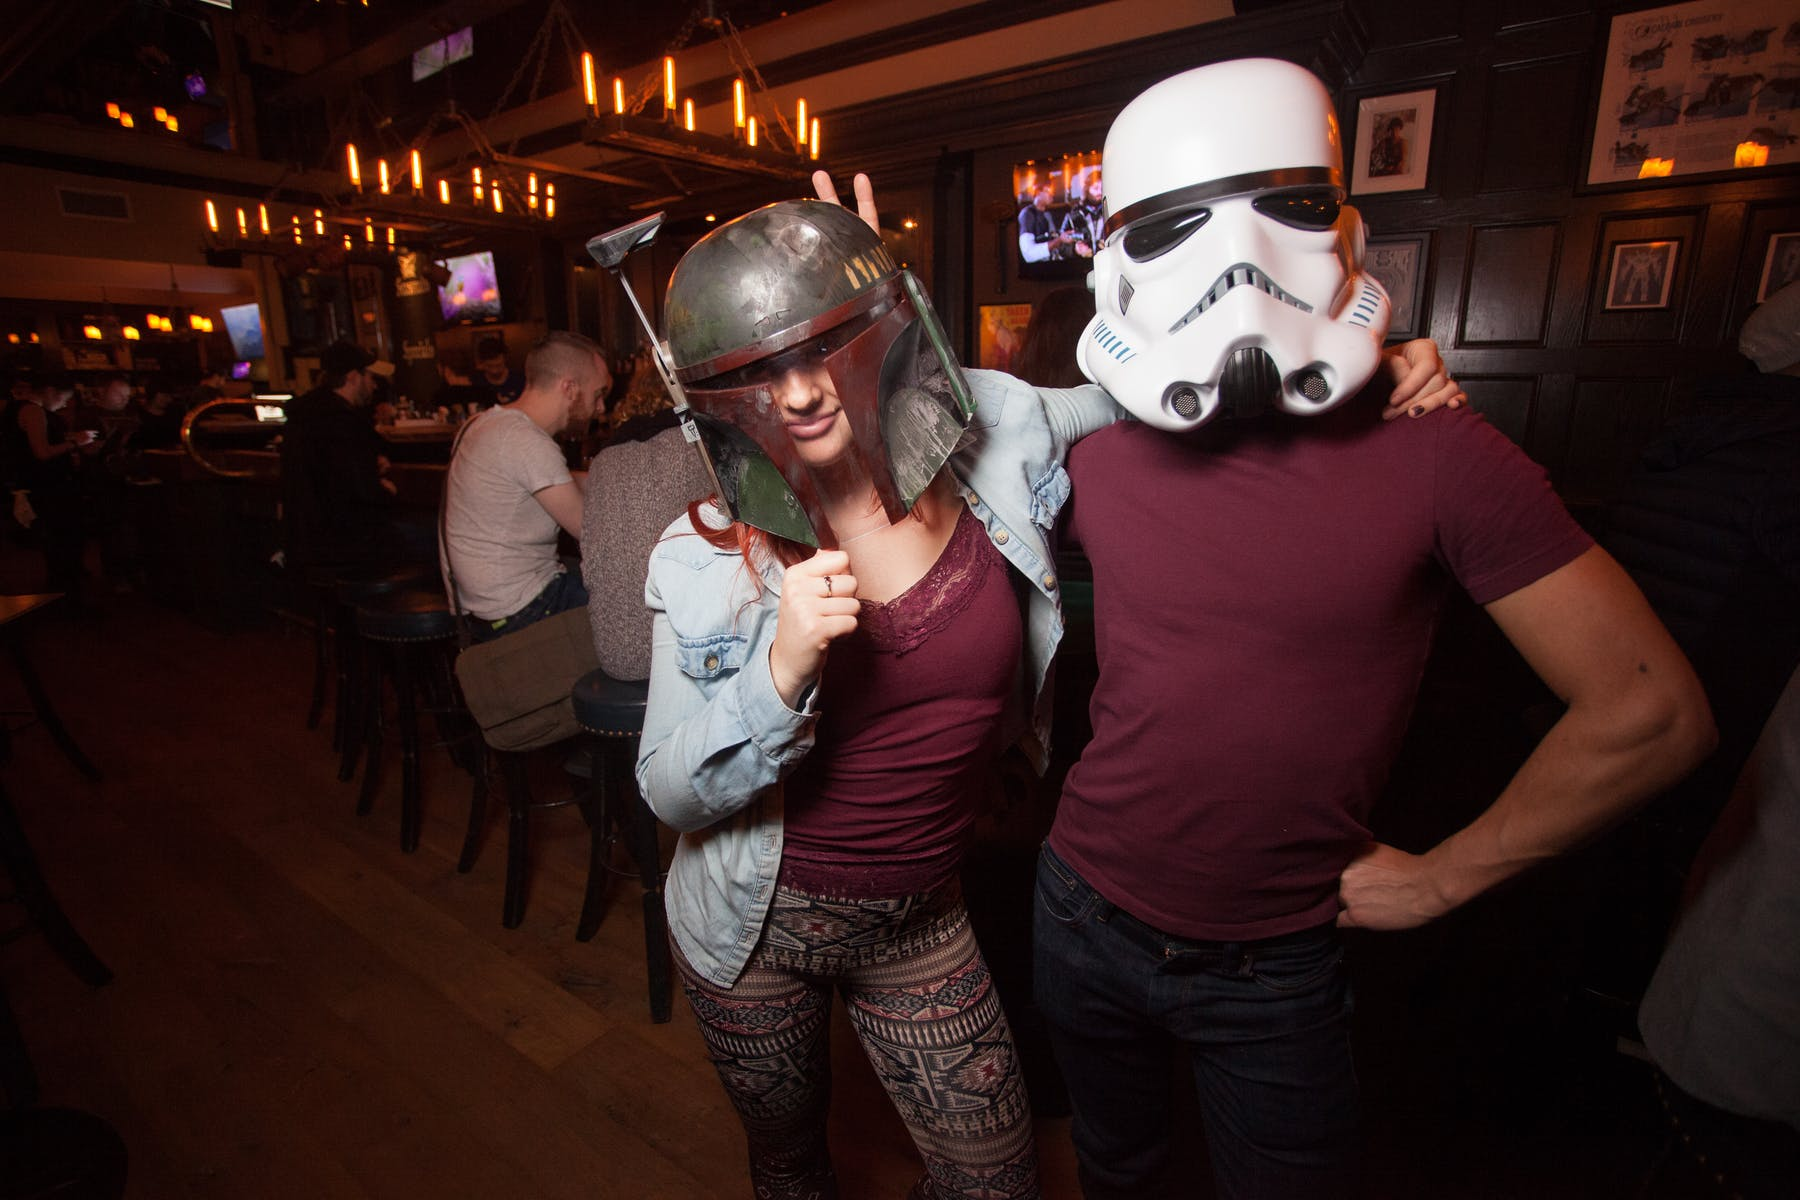 Star Wars theme outfits at Storm Crow